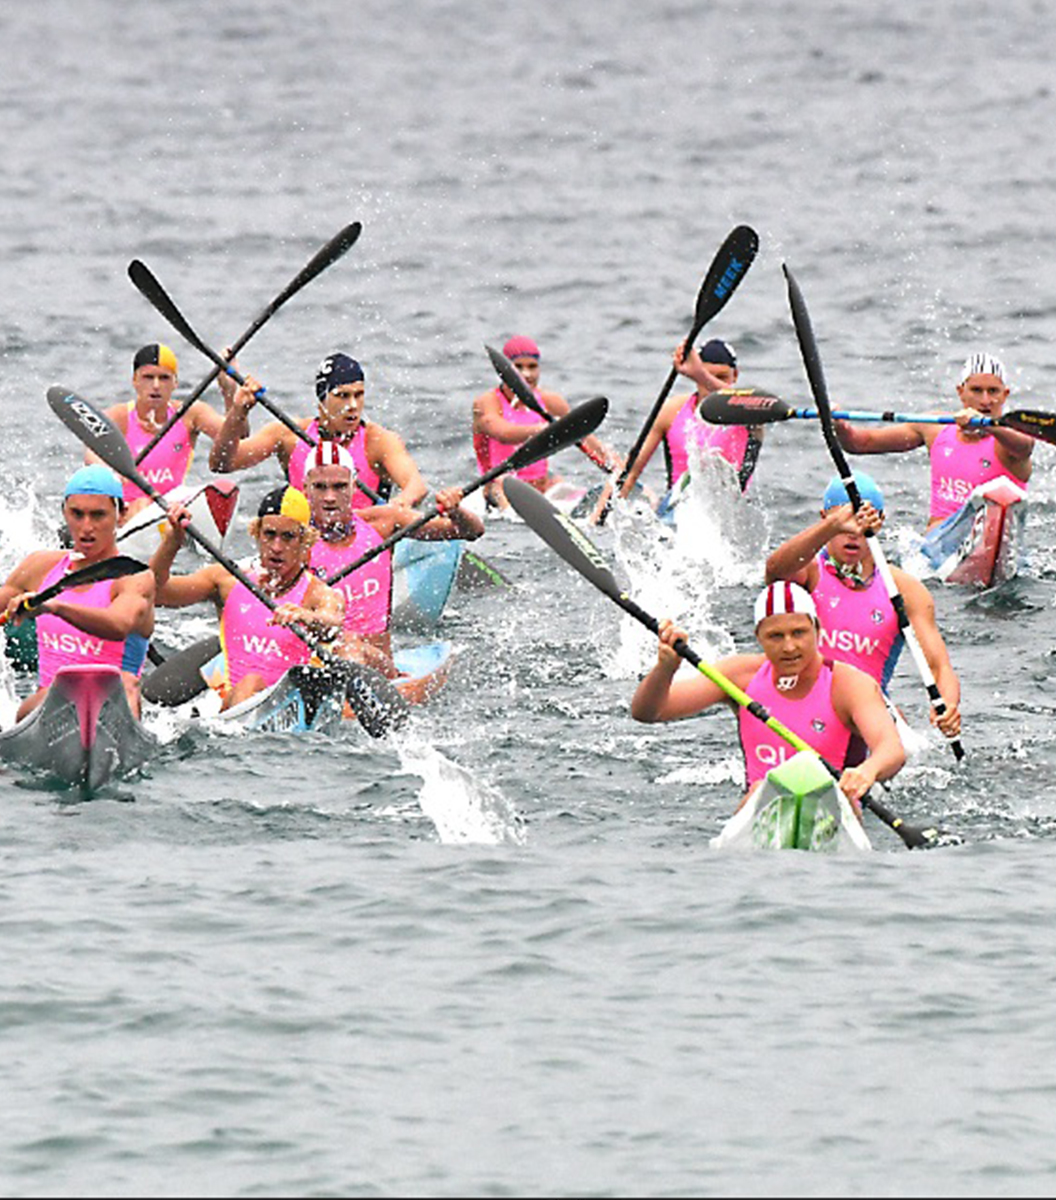 Group of competitors in ocean on skis